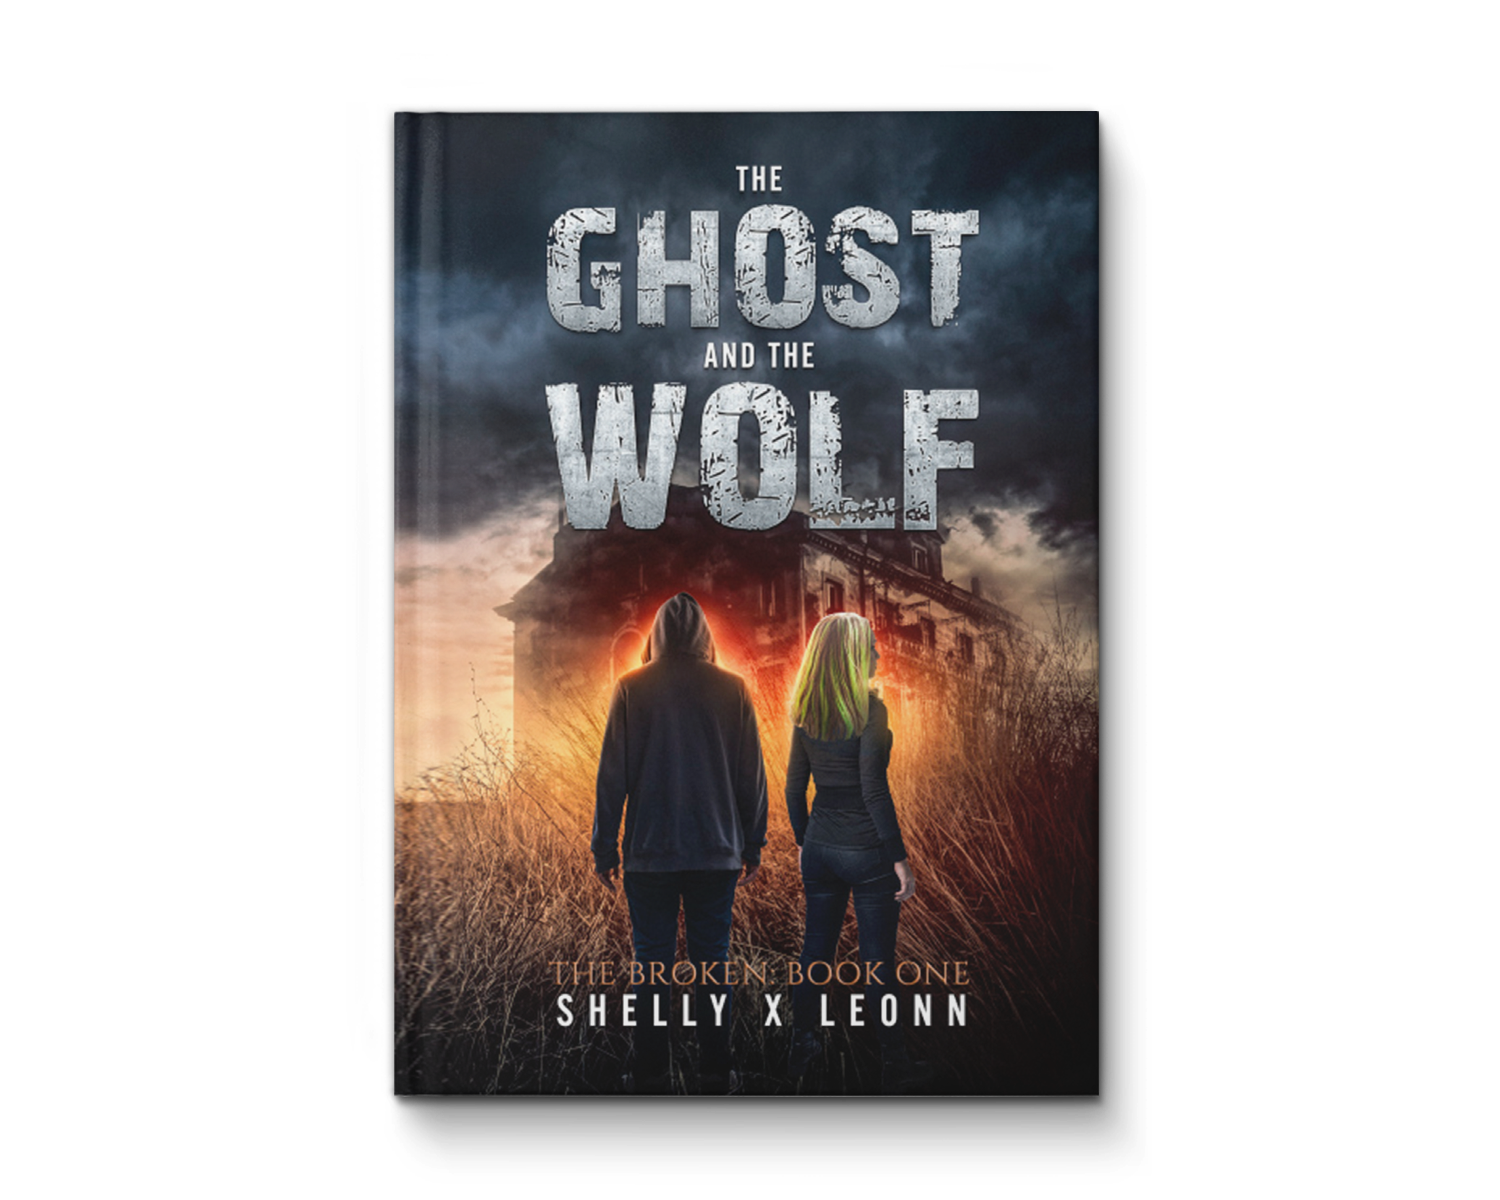 "The Ghost and the wolf: Book I of The Broken Series - Releases September 24.Student reporter Penelope needs to prove herself. She chases a story tip on a secret organization of teenage urban explorers called The Broken. With the assistance of a young paranormal investigator, she begins to uncover the group's darkest secrets.However, the members have other plans for Penelope and her new ""freak"" friend. The reporter becomes part of her story, and she will have to fight for her own life and the lives of her friends as she learns what it means to be one of The Broken.View Teacher's Guide here."